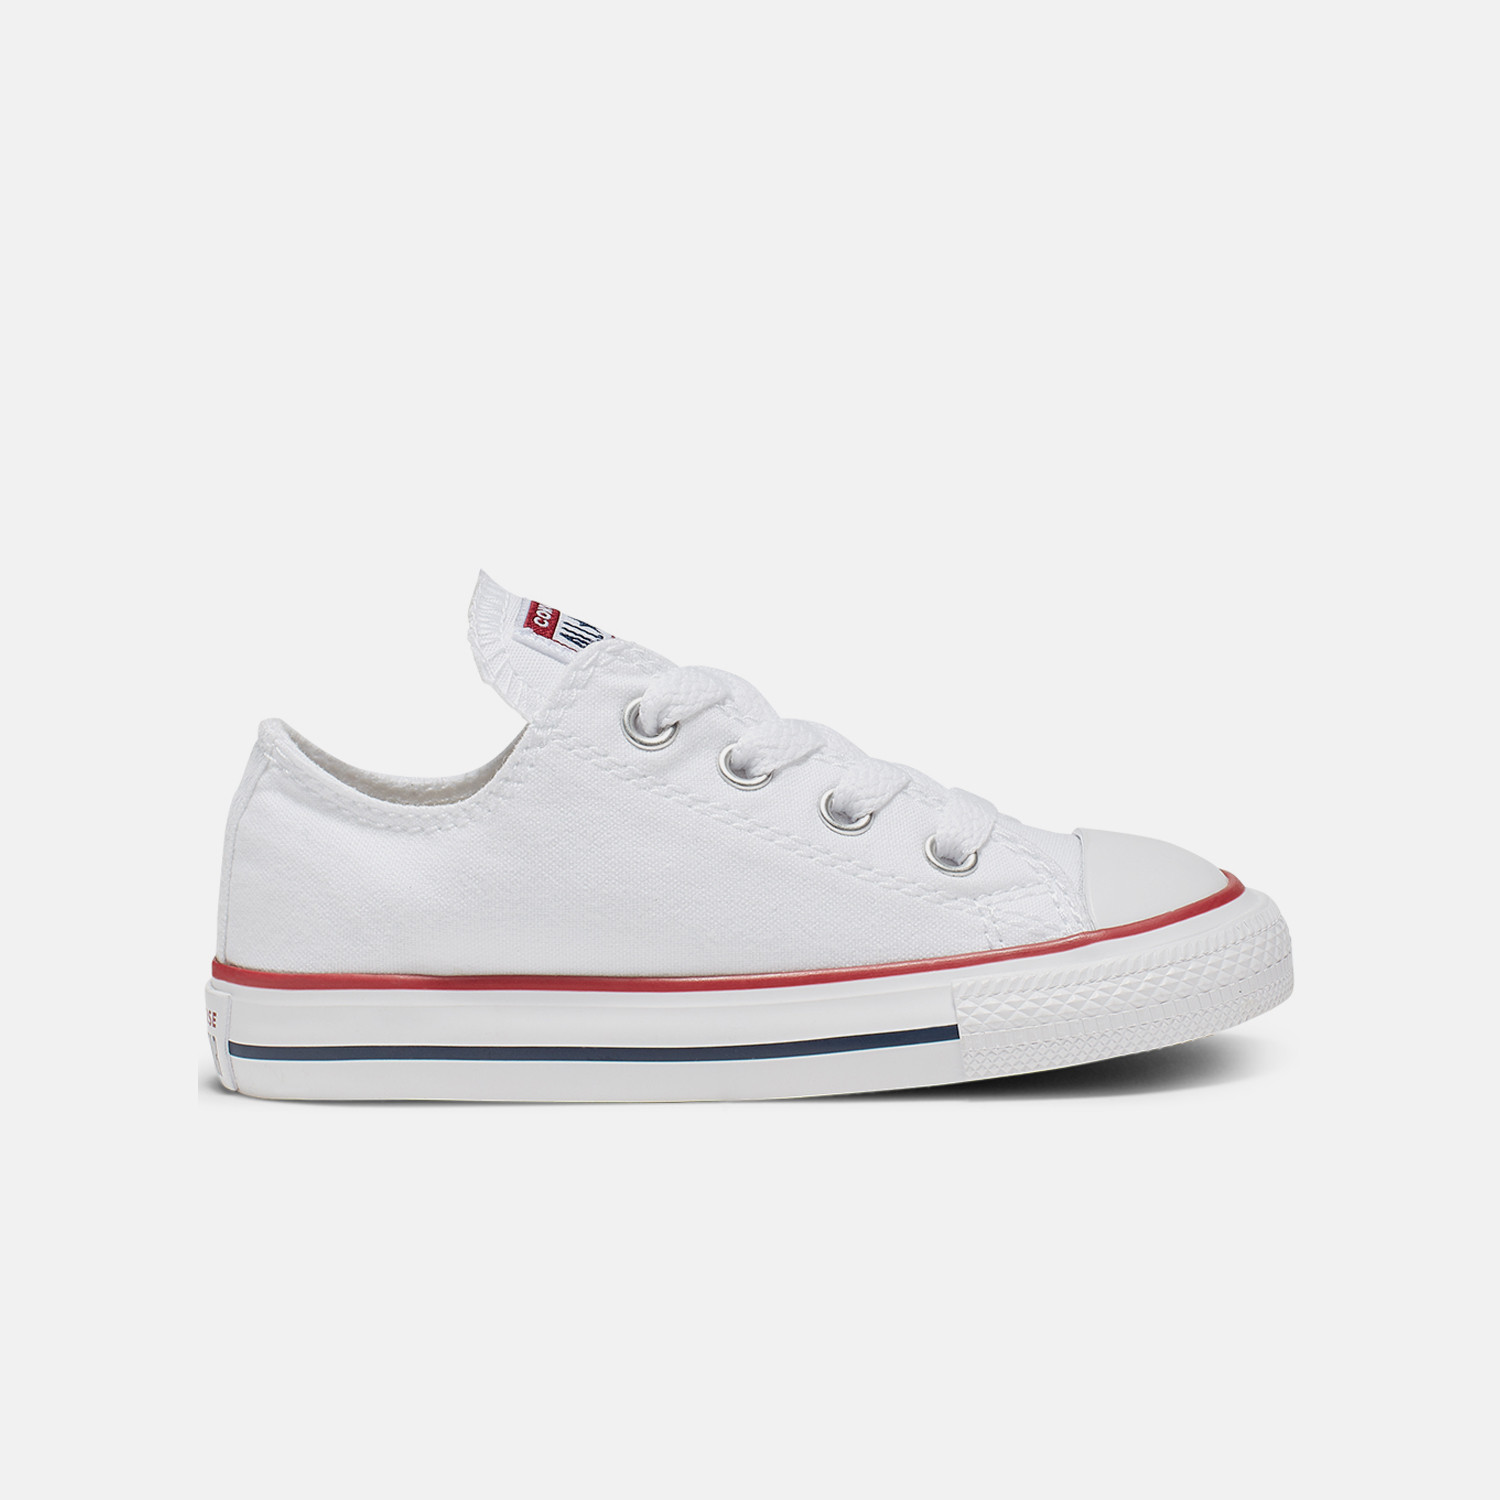 Converse Chuck Taylor All Star Βρεφικά Παπούτσια (1080040504_002)